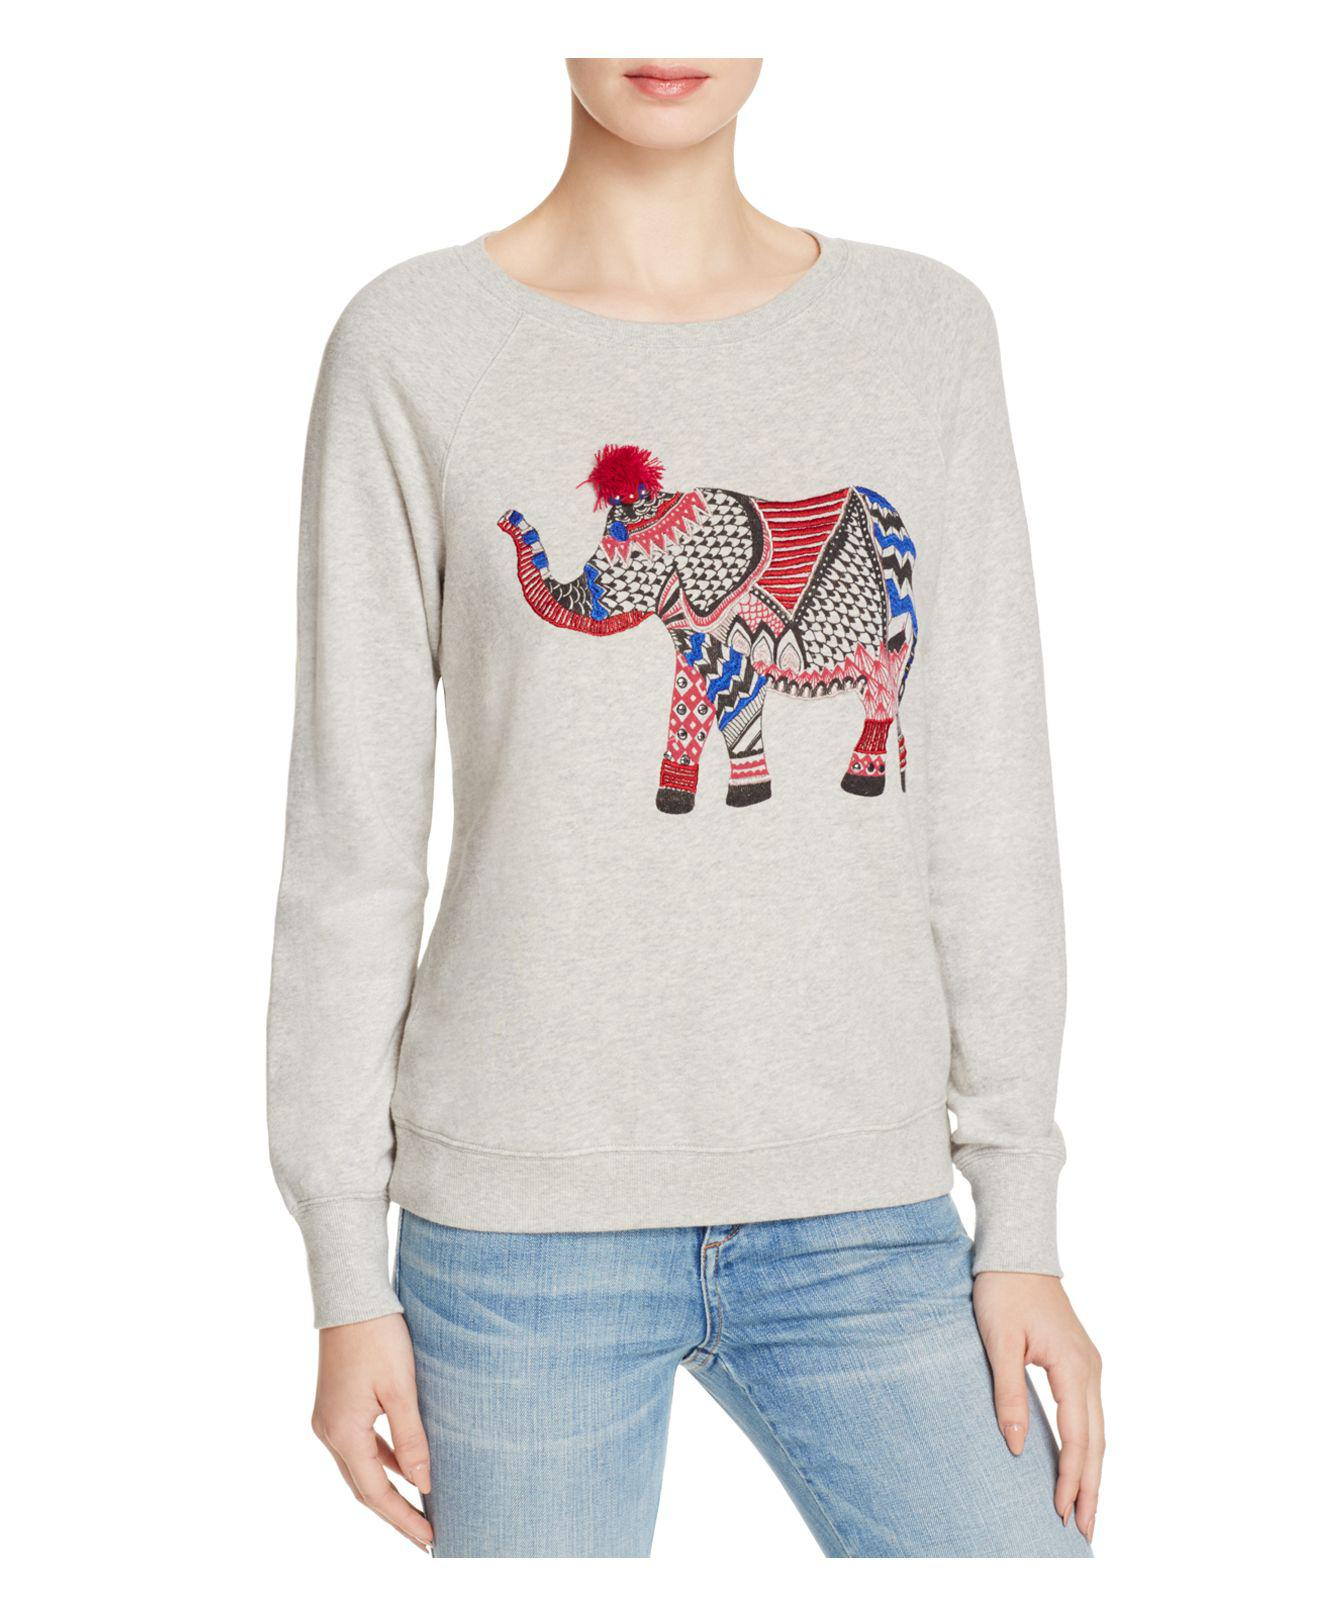 6f8cd9f86f539c Lyst - Soft Joie Annora Embroidered Sweatshirt in Gray